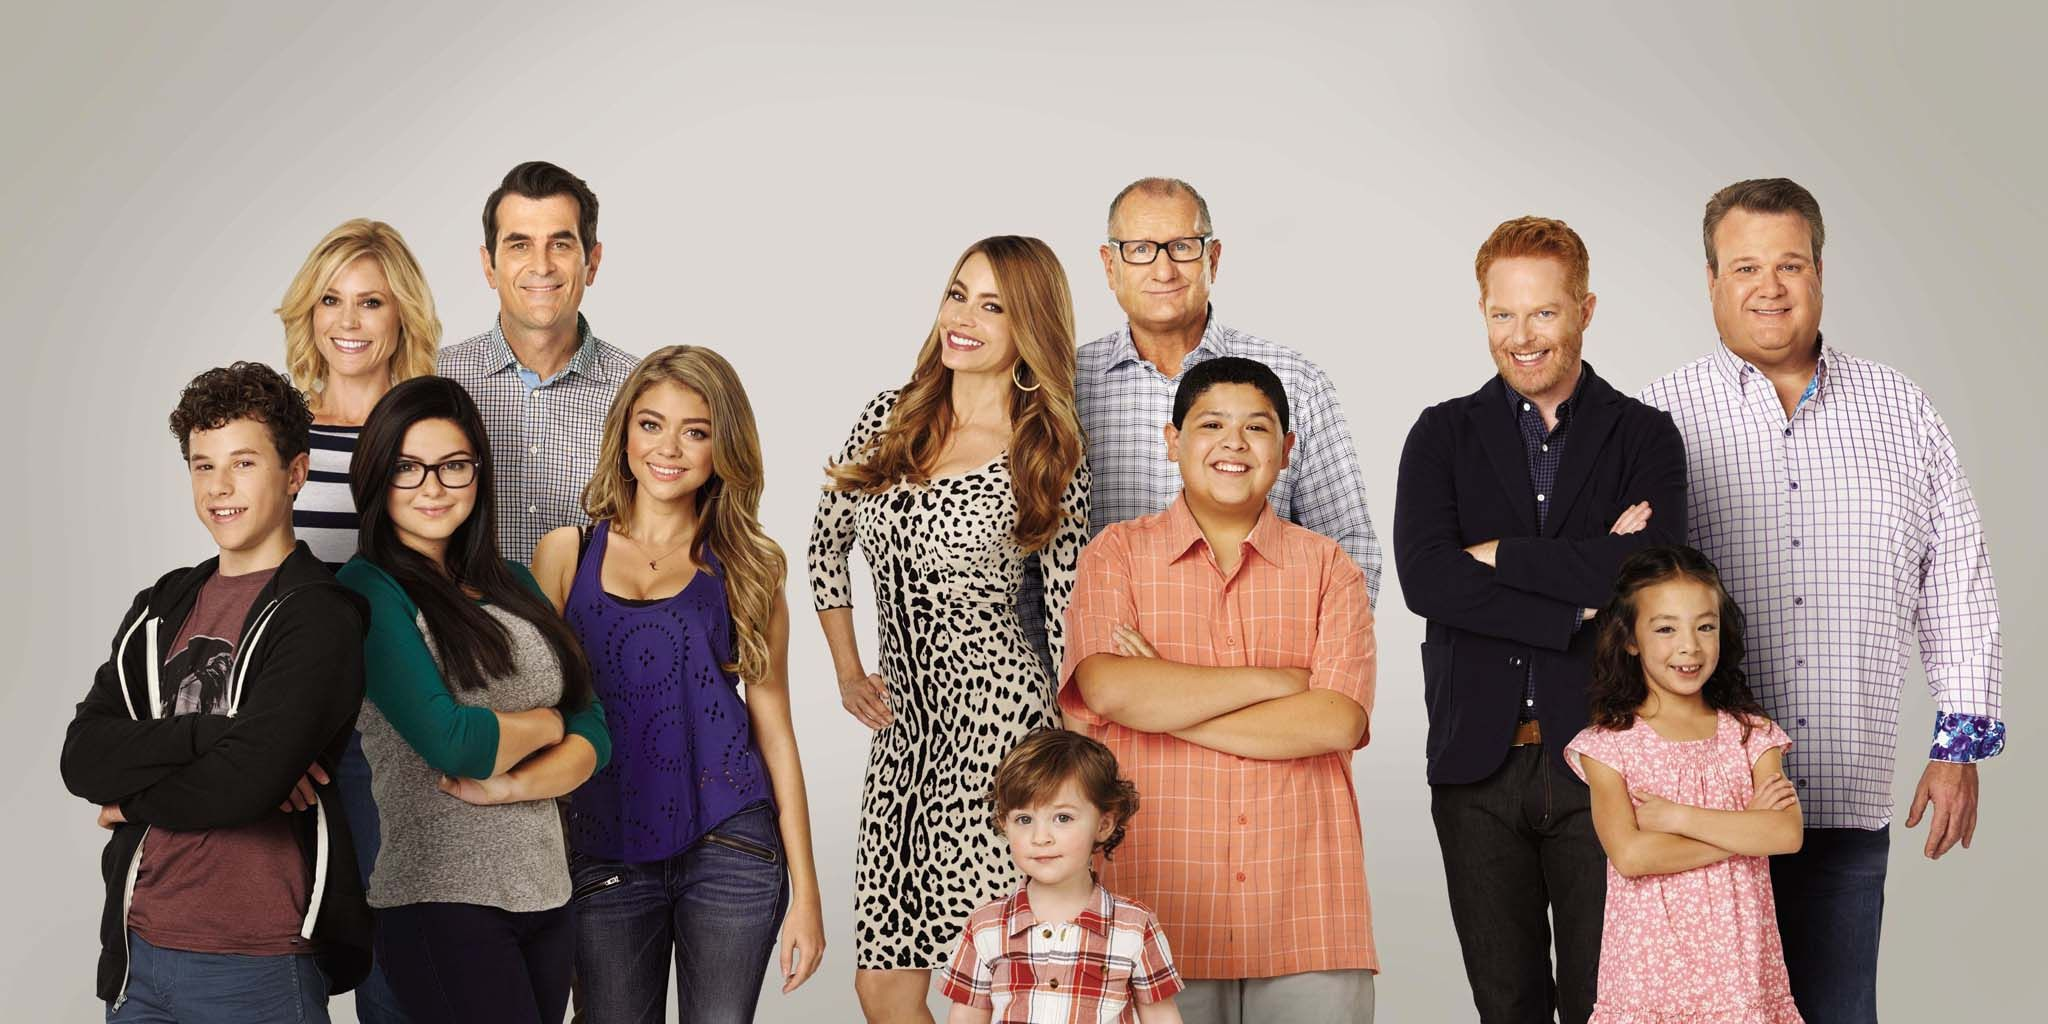 With its focus on three interrelated families from various backgrounds, Modern Family championed diversity in many forms